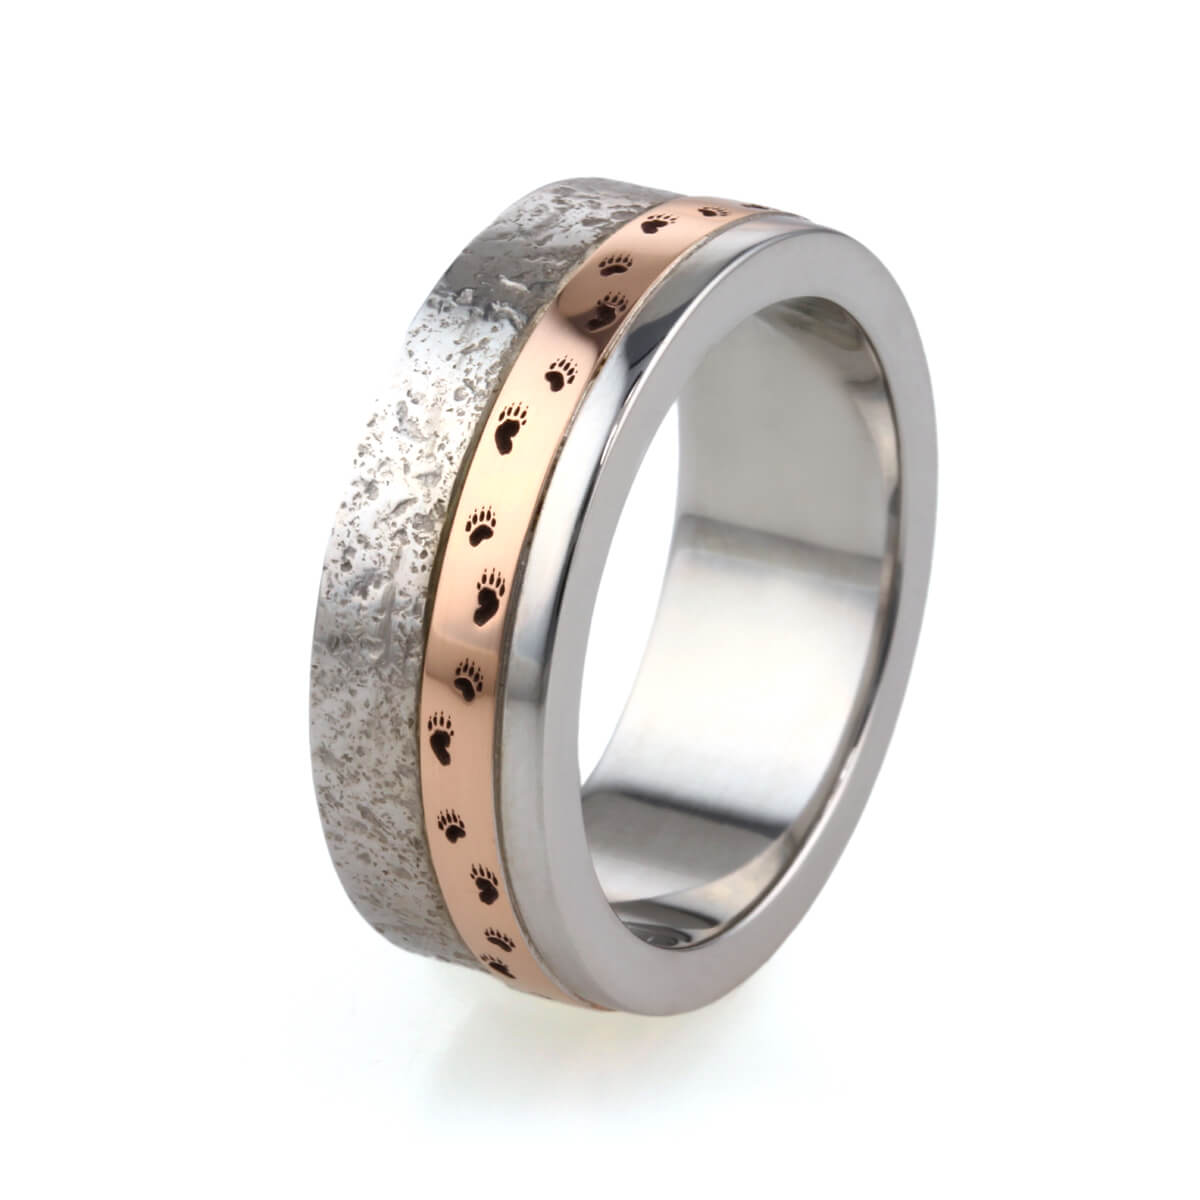 9ct white and rose gold textured mans wedding ring